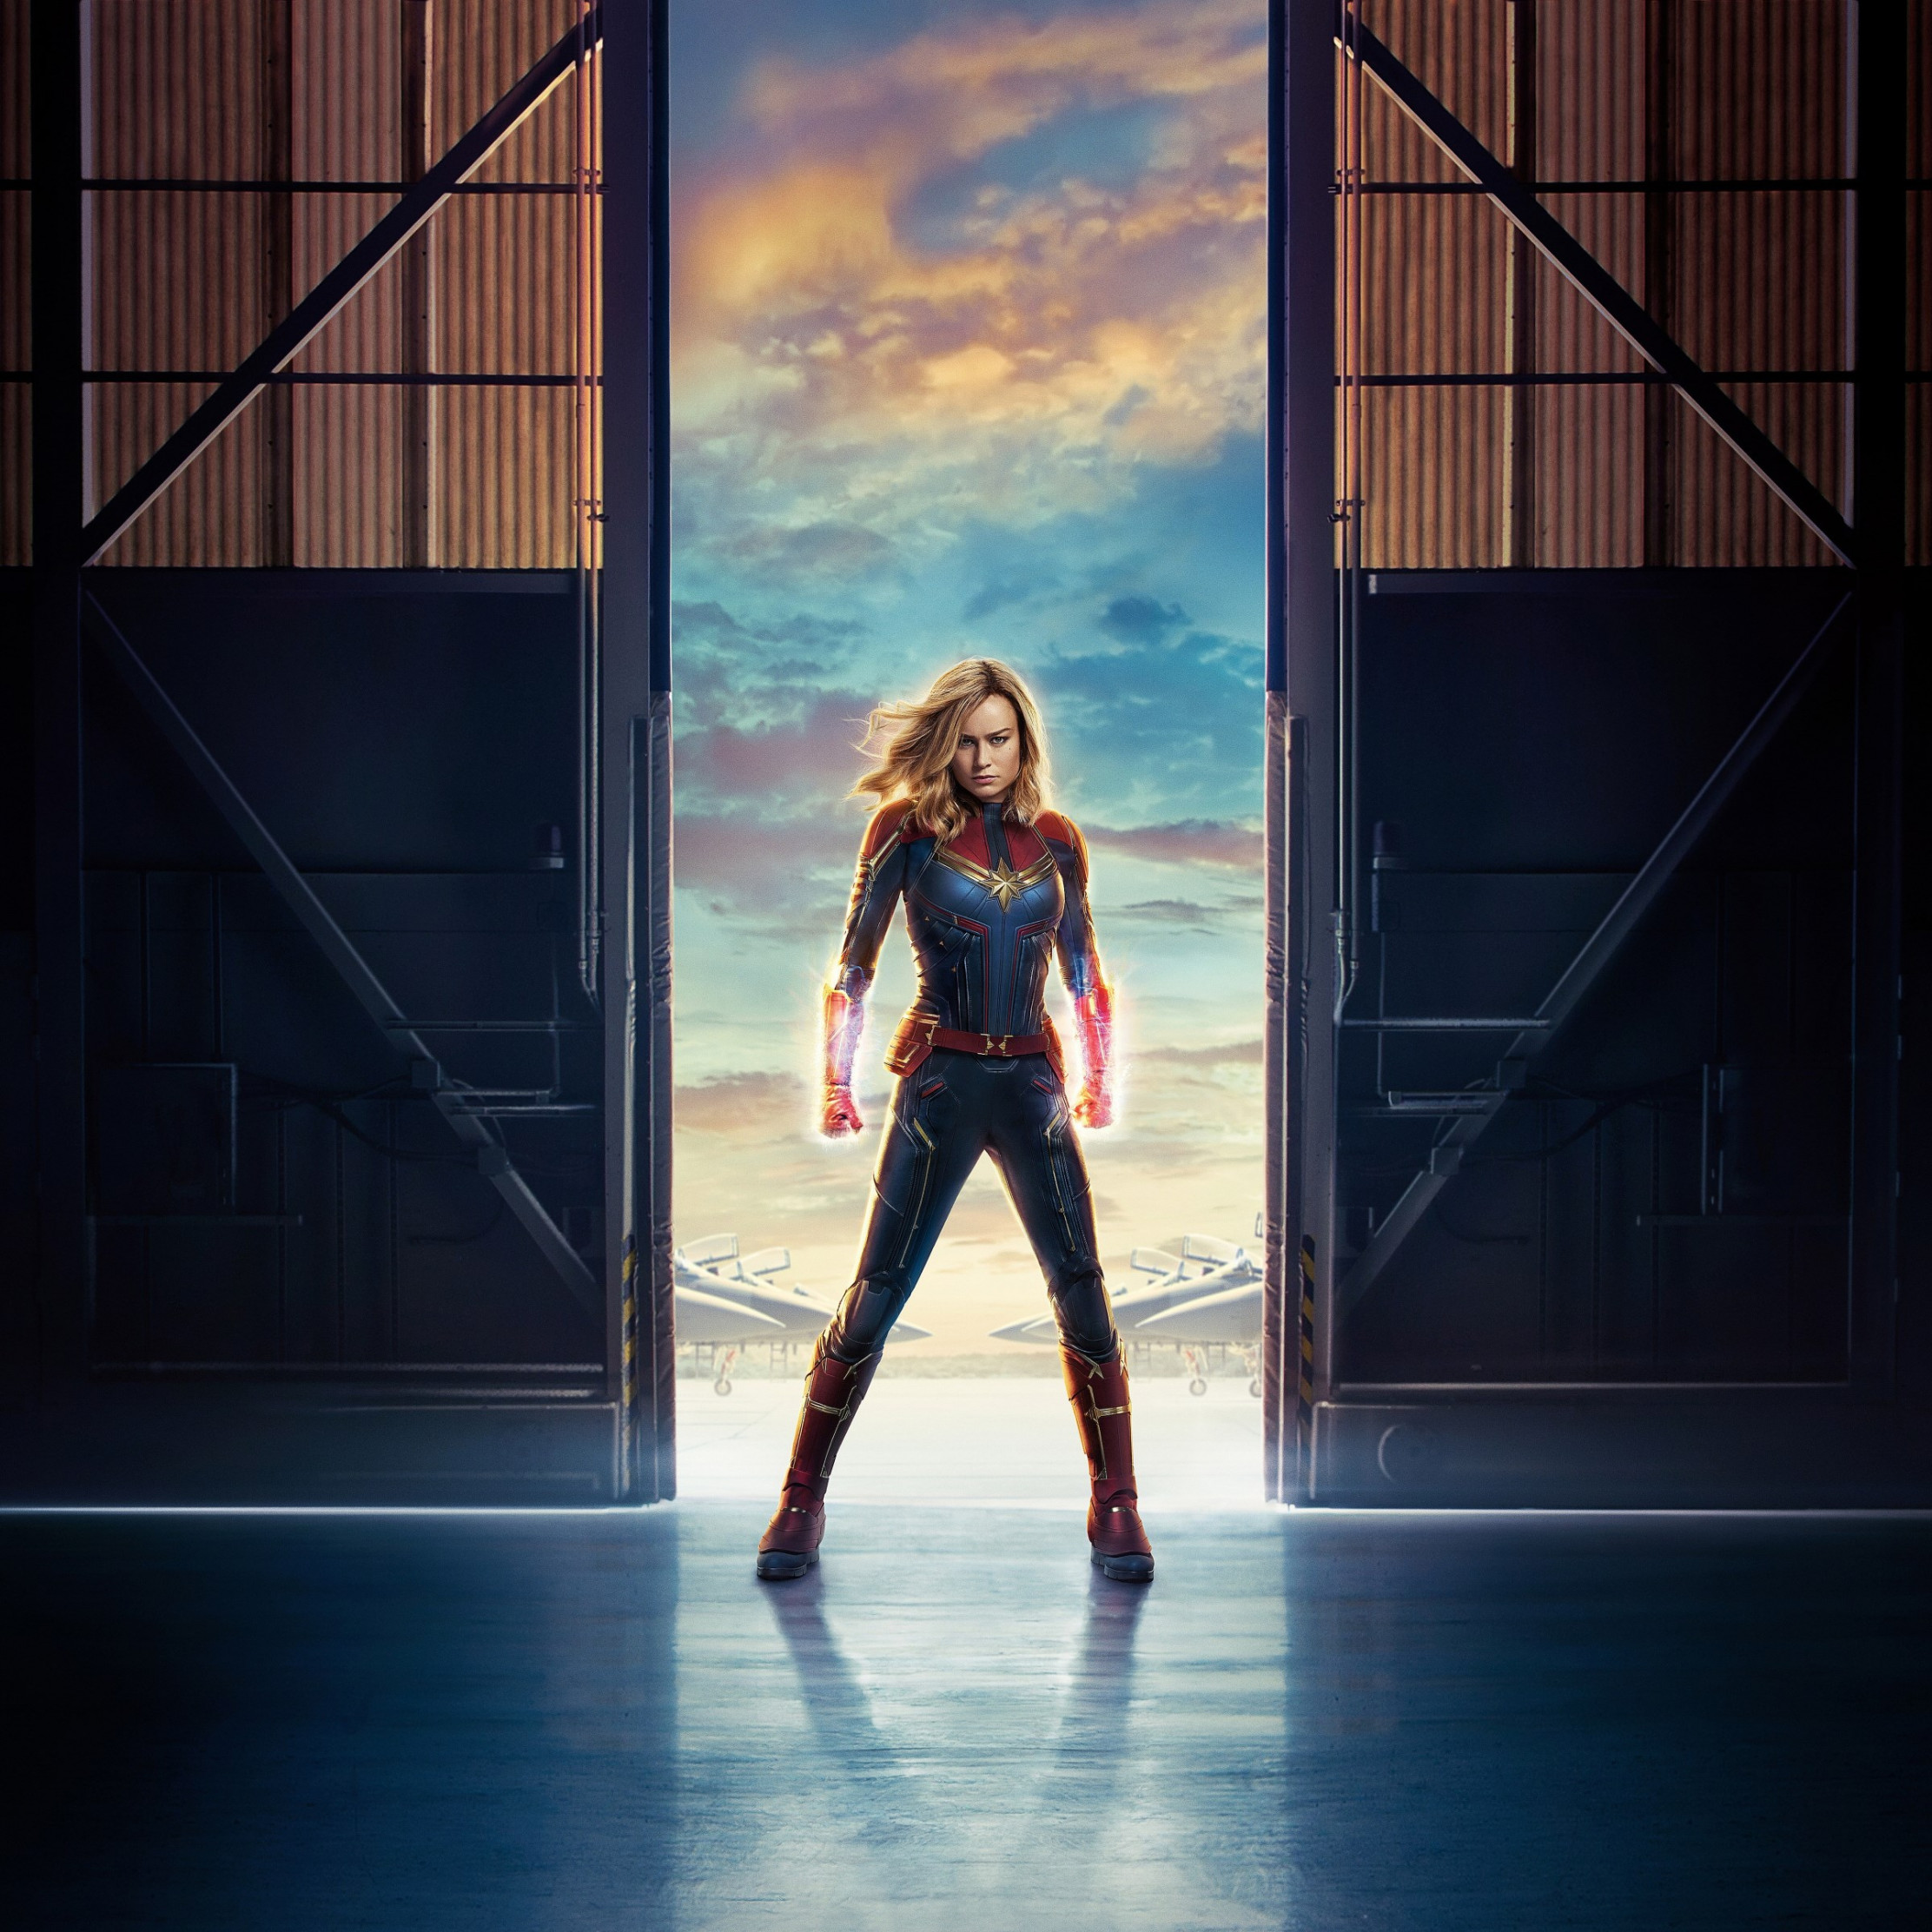 Captain Marvel wallpaper 2224x2224